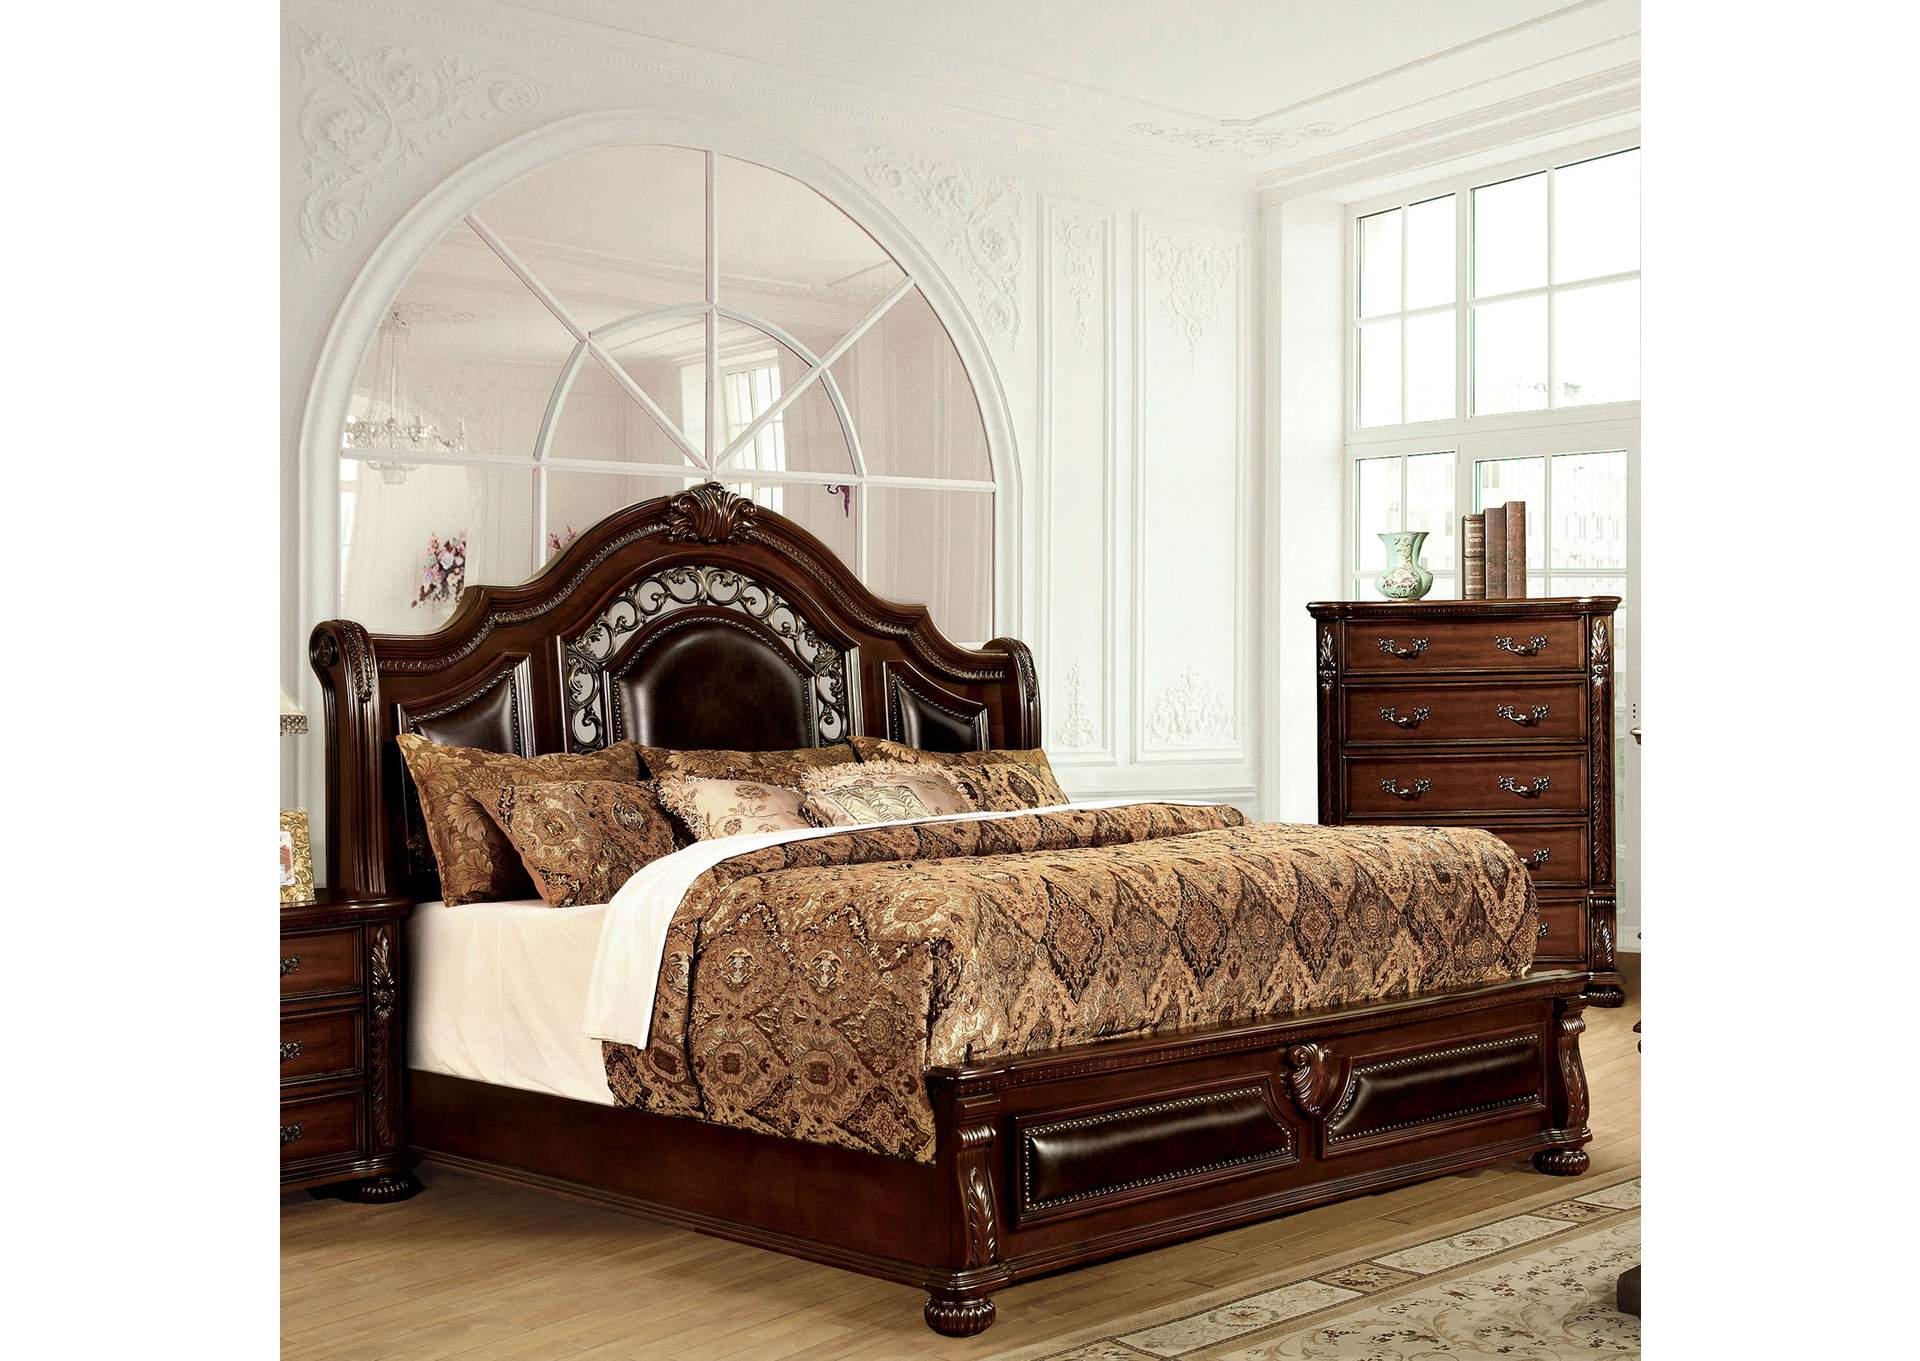 Flandreau Brown Cherry Queen Platform Bed,Furniture of America